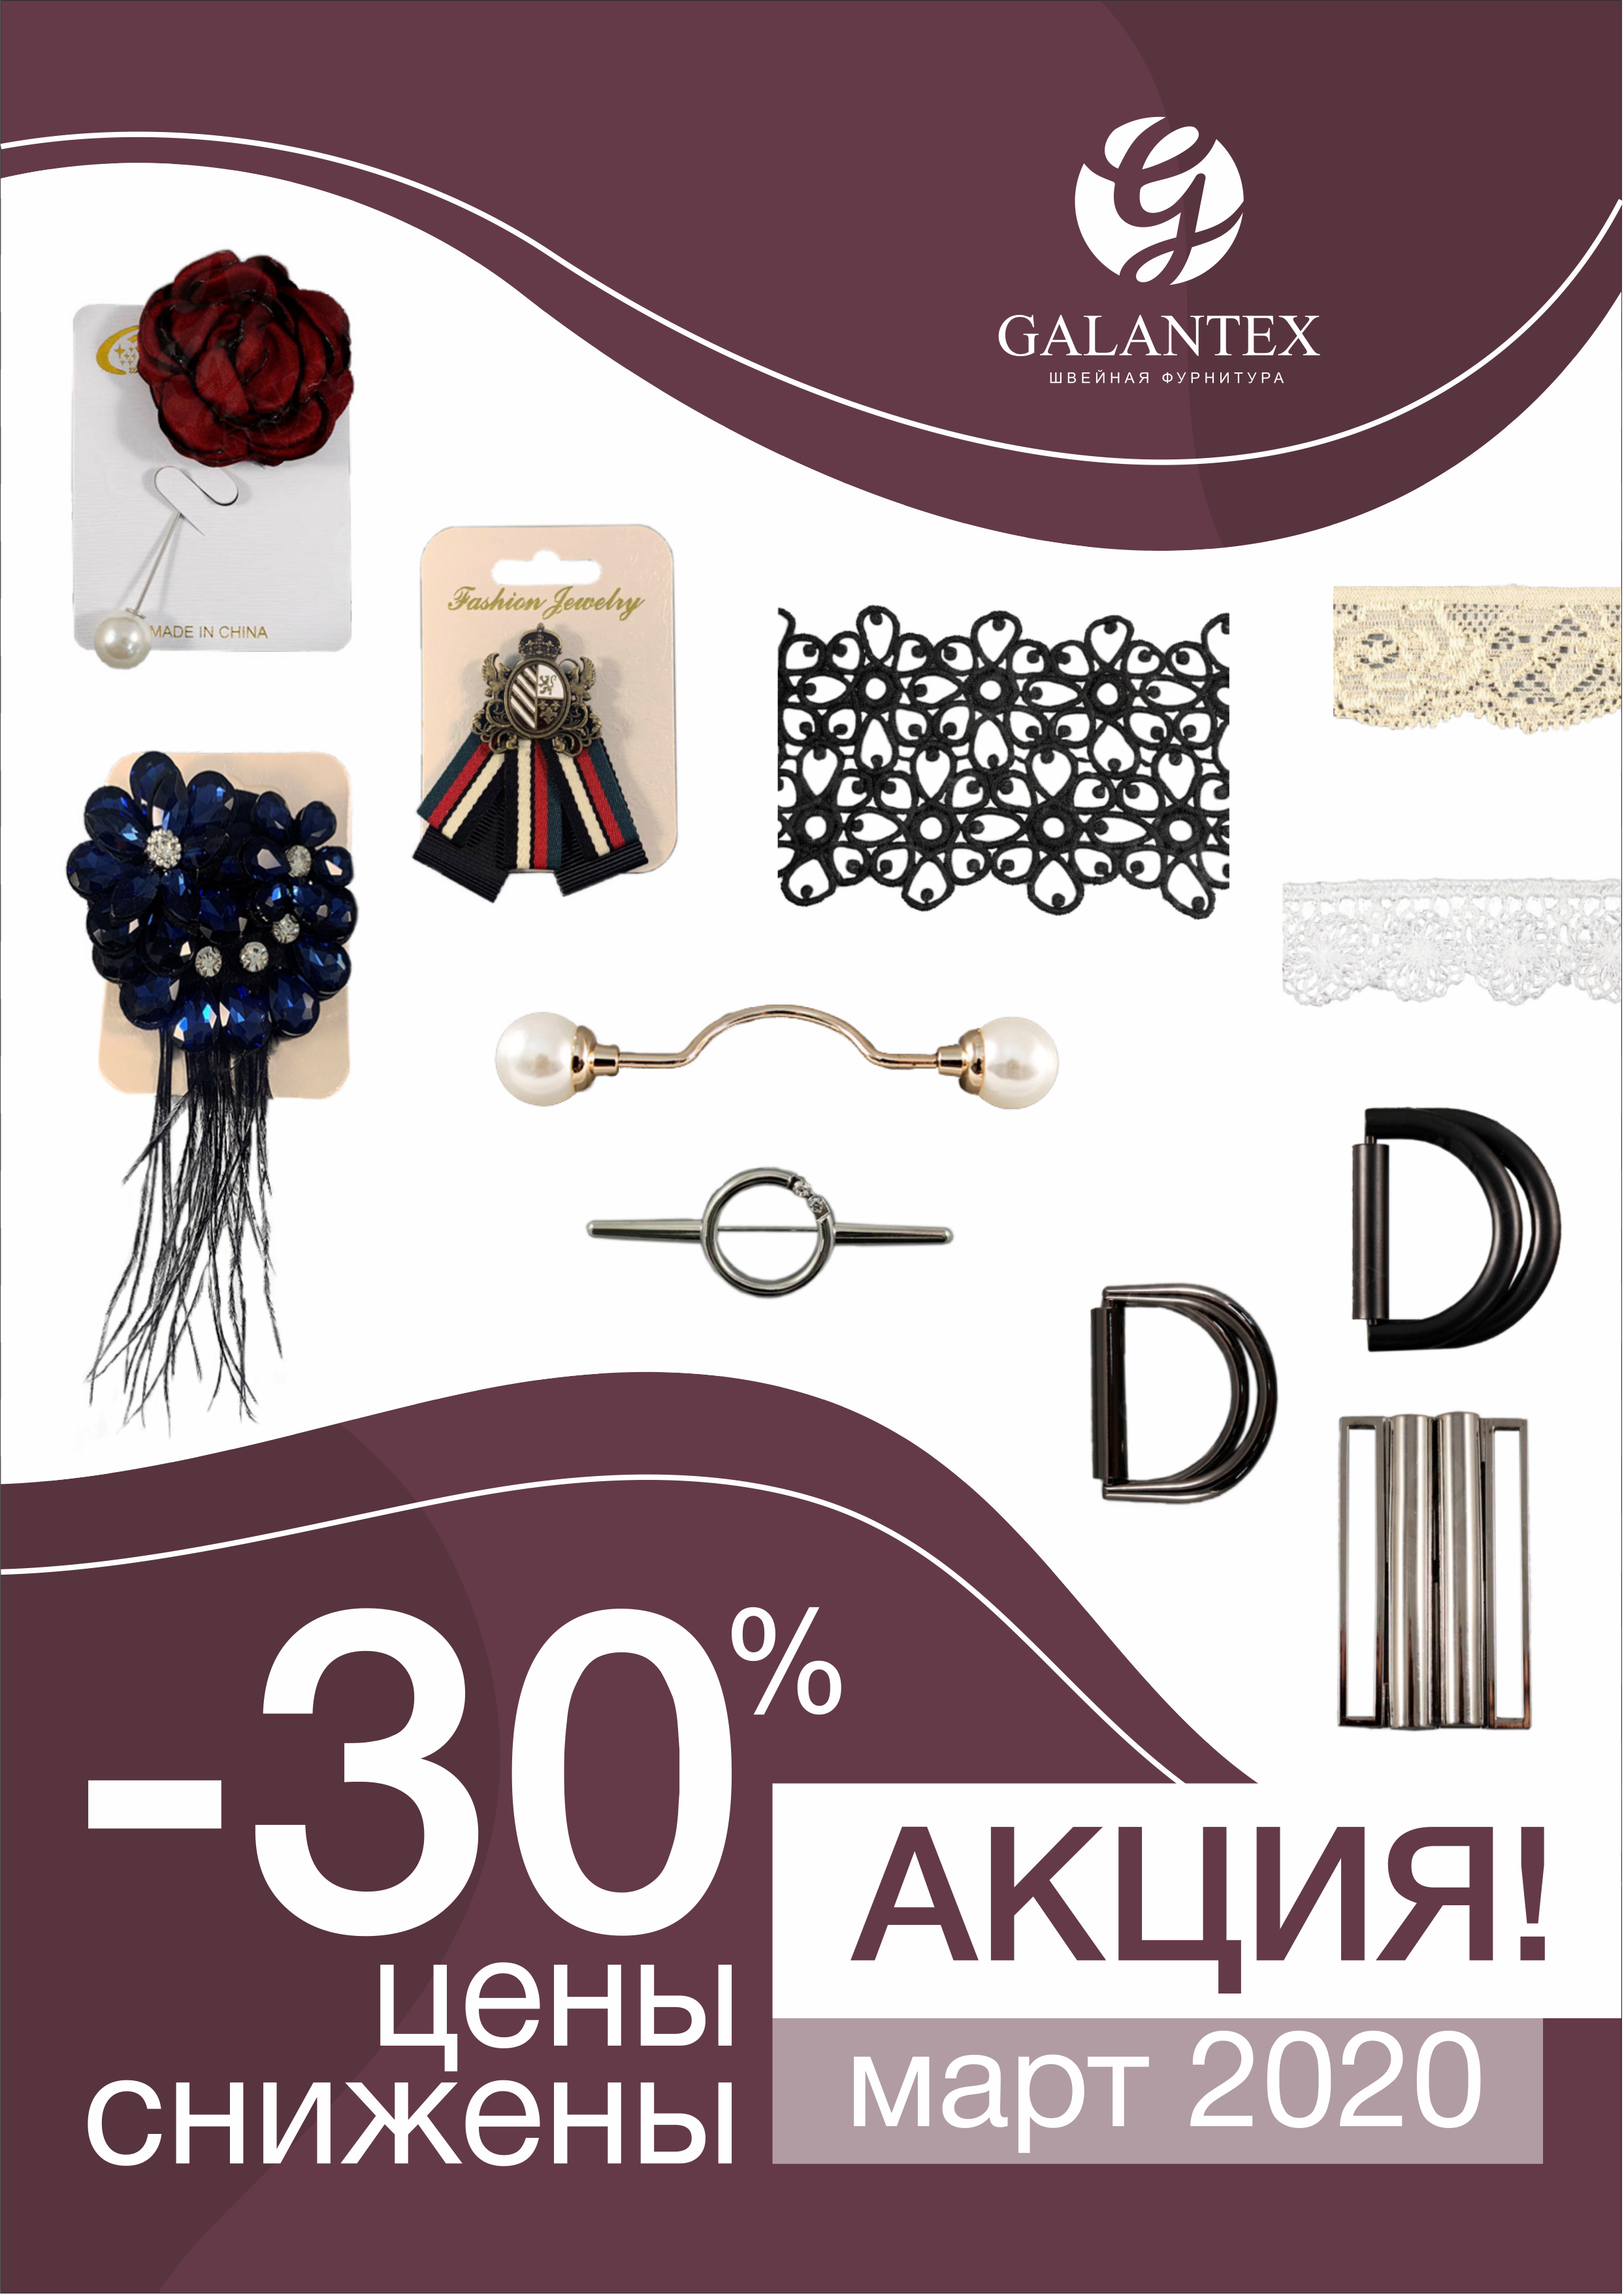 Sale! Only on March prices reduced by 30%!